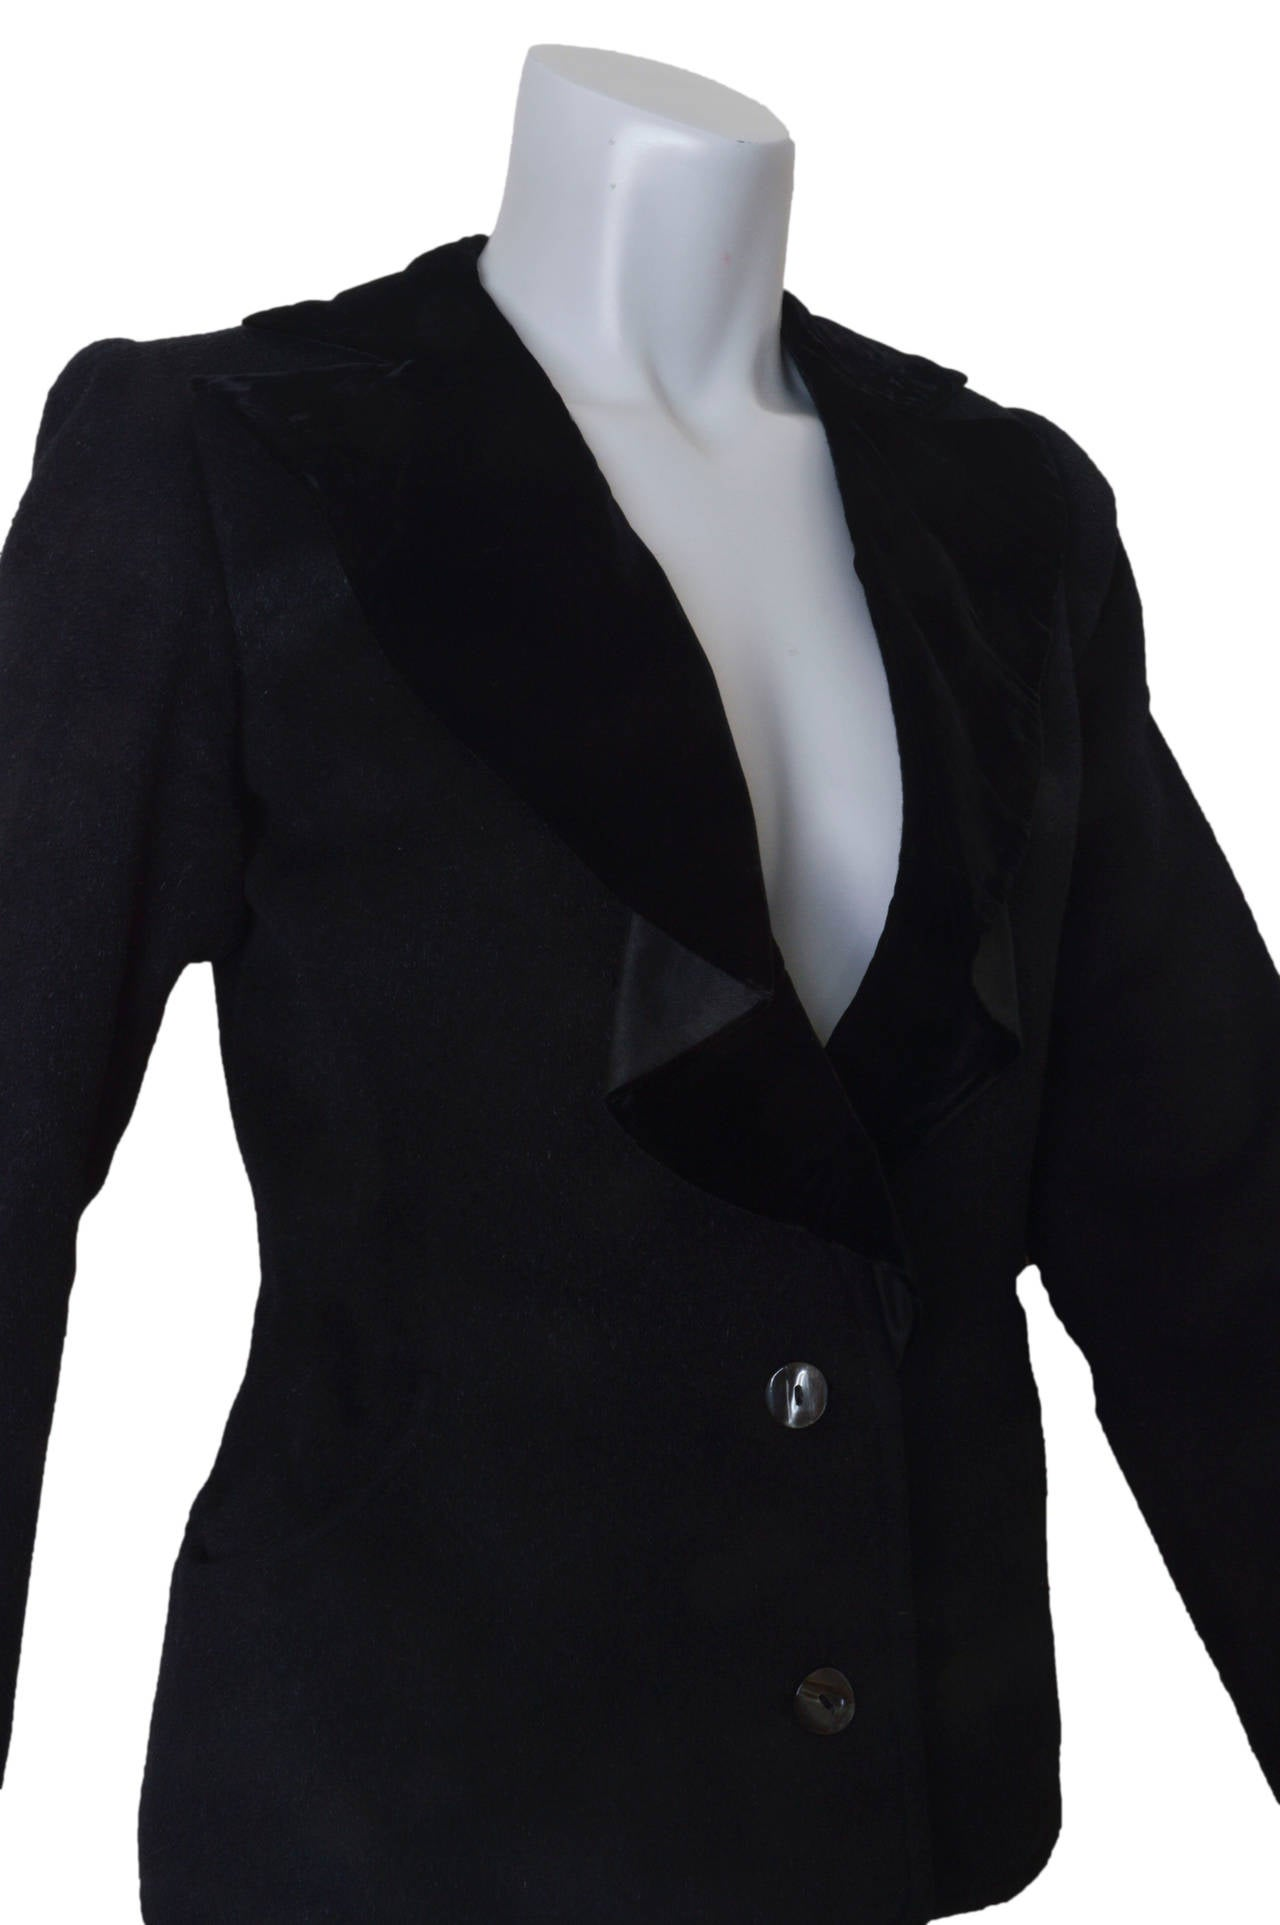 Yves Saint Laurent Rive Gauche Black Wool and Velvet Blazer In Excellent Condition For Sale In San Francisco, CA